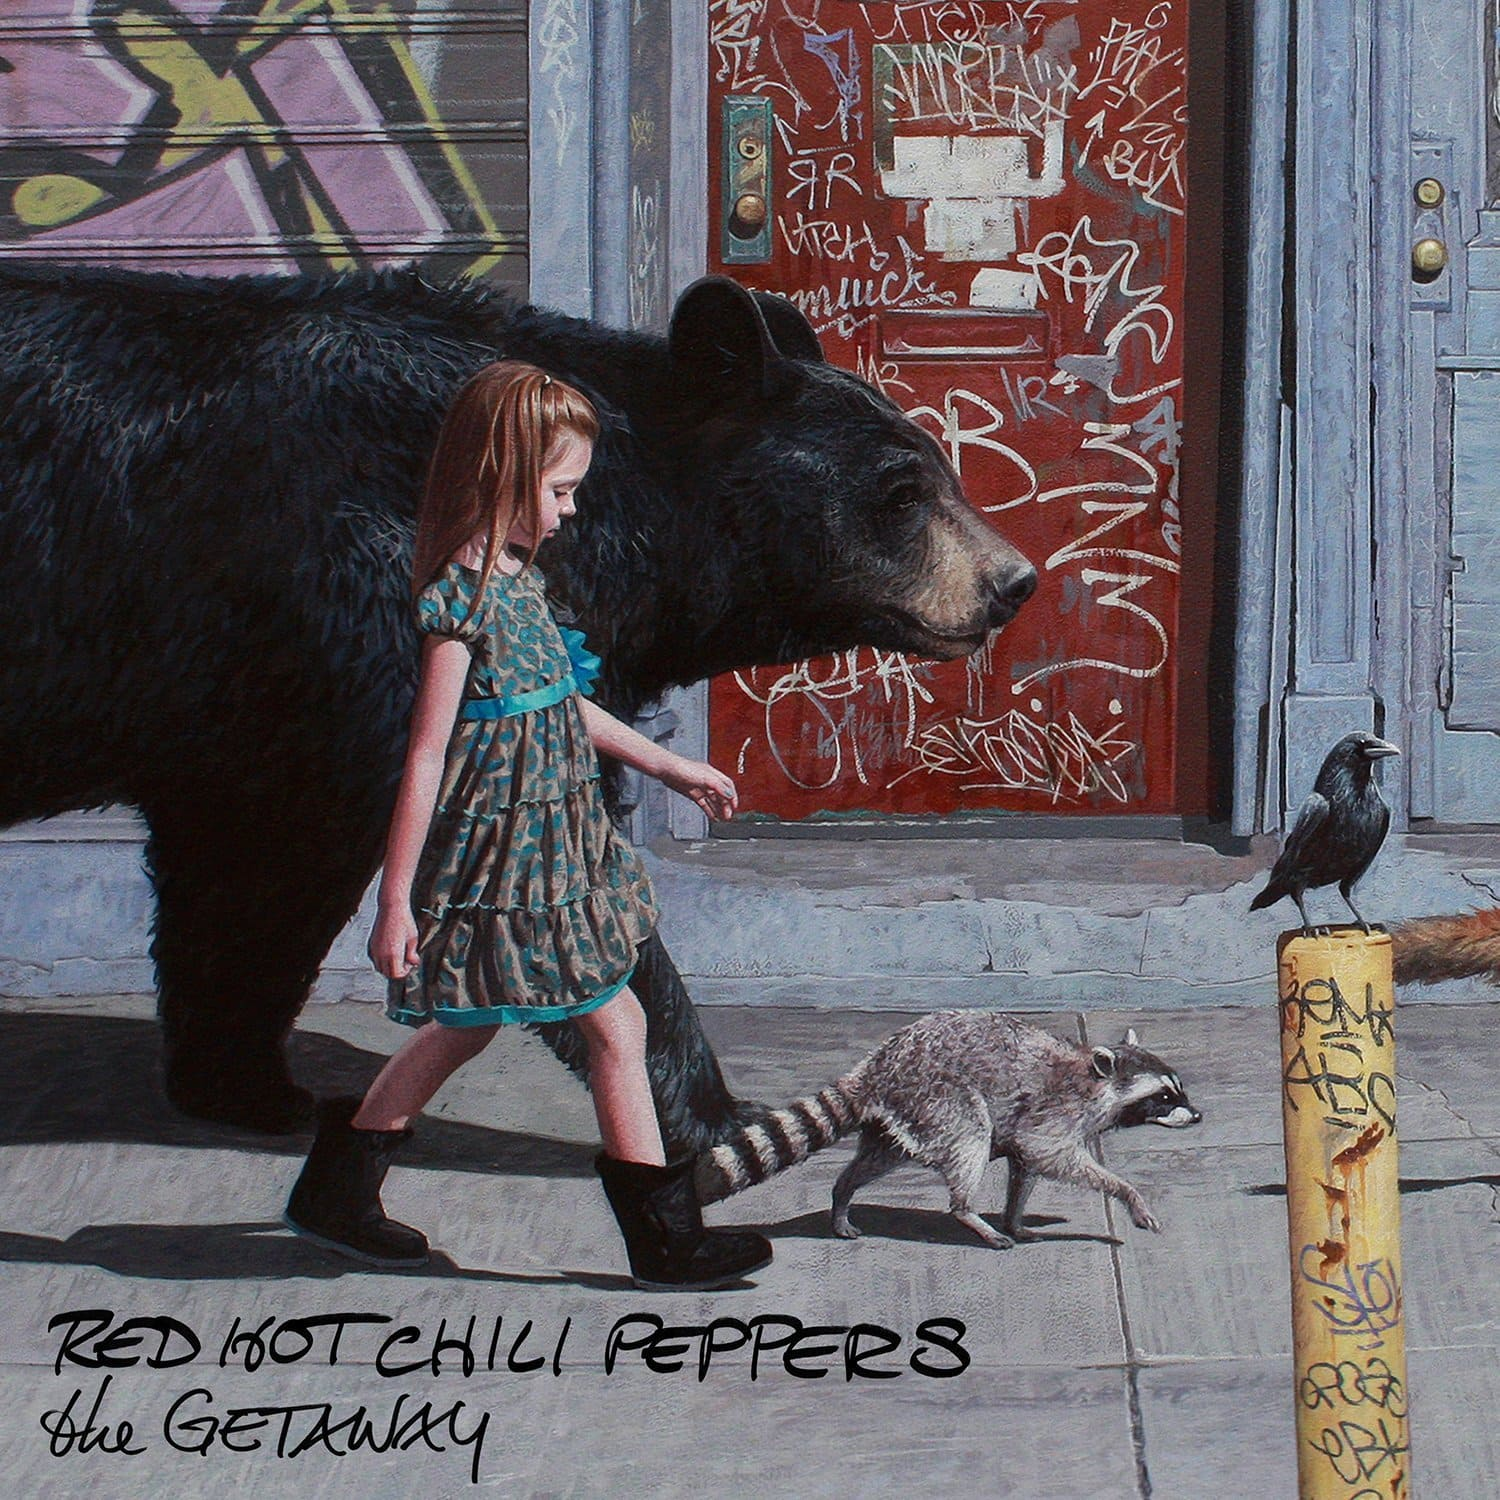 Red Hot Chili Peppers The Getaway Vinyl possible pricing error $11.49 pre order on Amazon